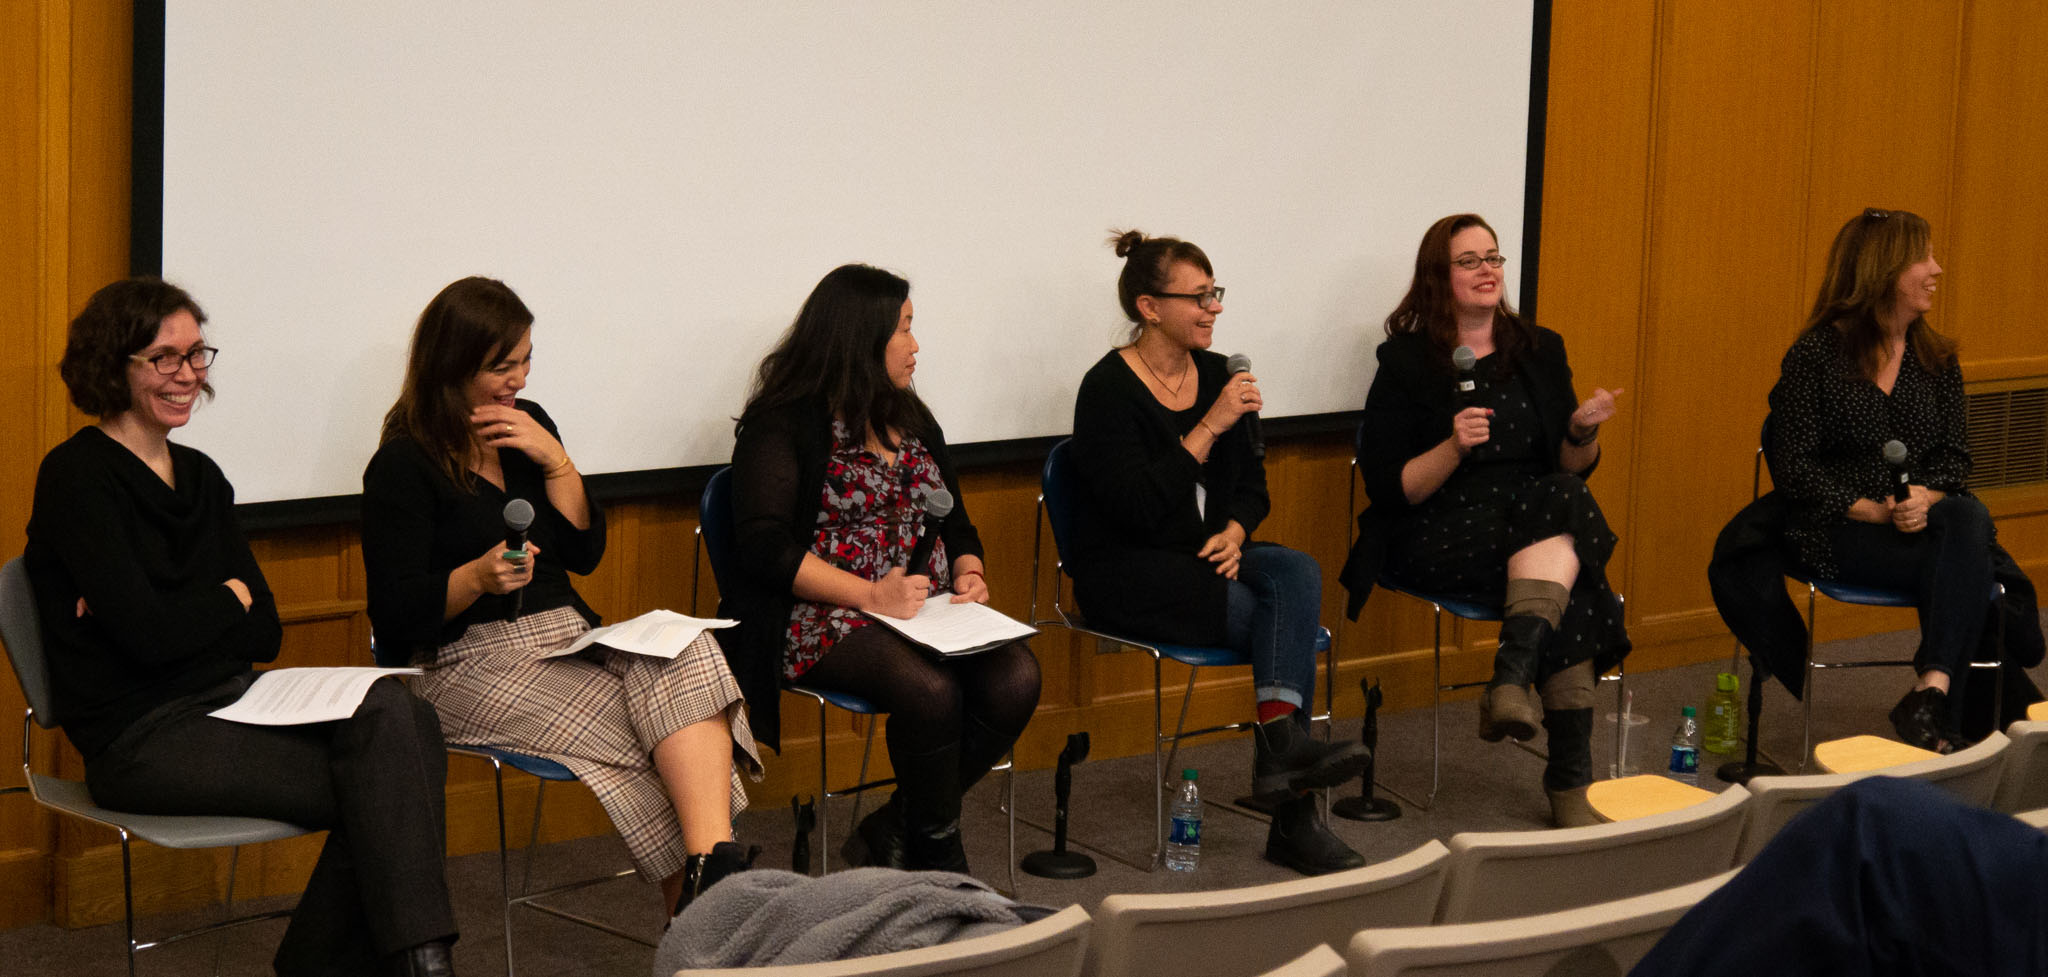 Sirin Aysan, Ellen Huang, Tana Kupczak, Lacey Leavitt, Kristen Schaffer (from left) discuss prevalent issues involving women in film in the wake of the #MeToo Movement during a panel moderated by Professor Justine Barda.